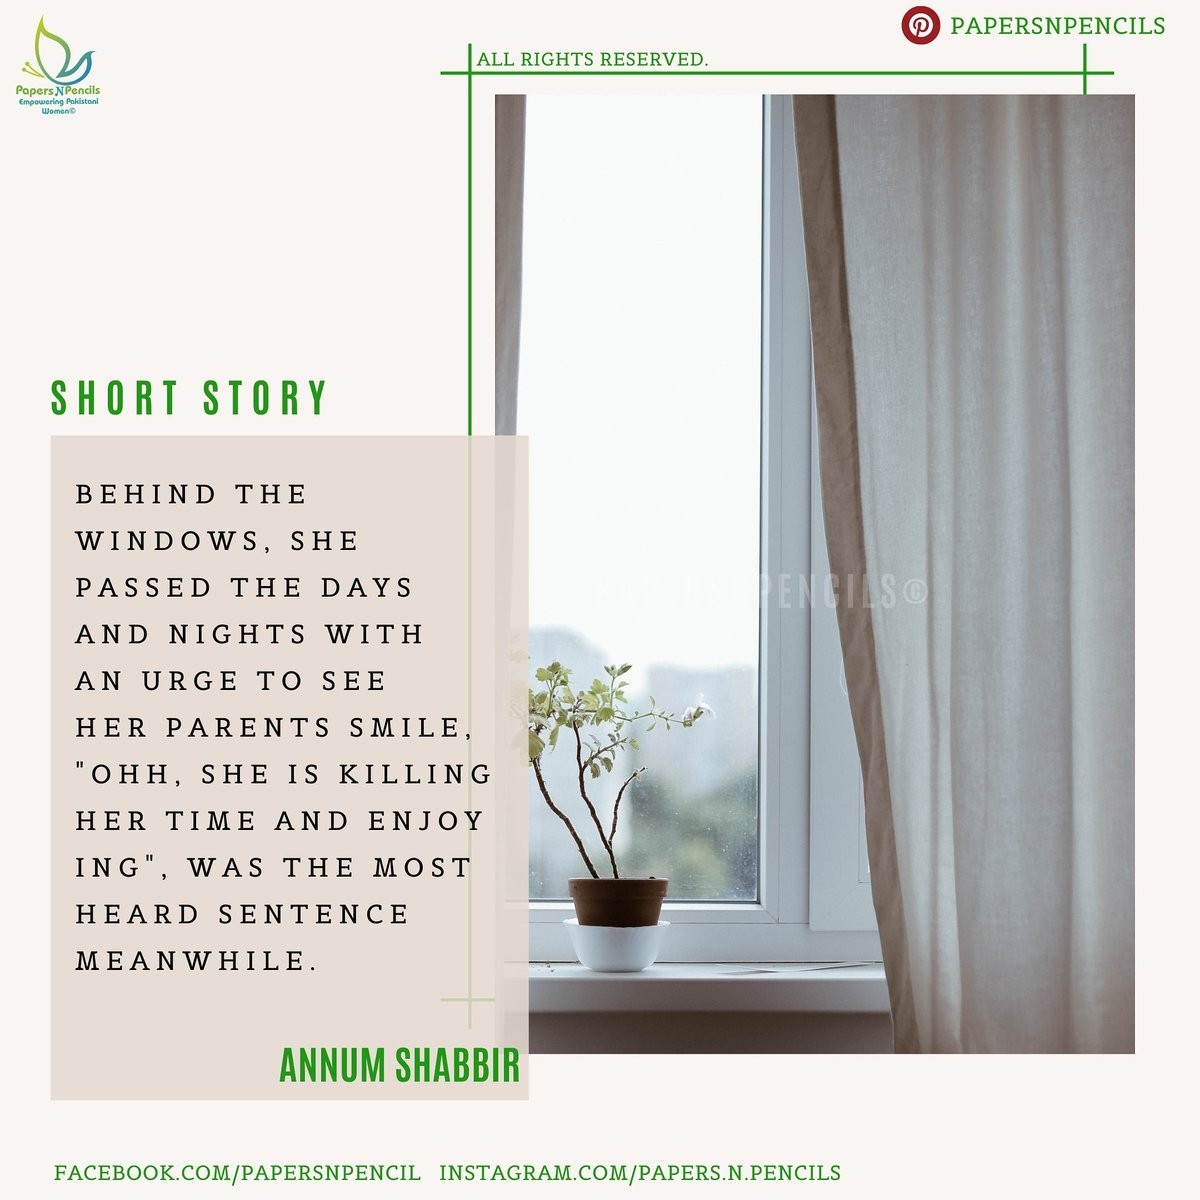 Short Story All Rights Reserved. No body is allowed to share our personal data with his/her name.  #papersnpencils #E_magazine #shortstories #Storia #Happiness #Windows #ThursdayMotivation #thursdaymorning #WritersCafe #feminism #storymagazine https://t.co/0nGzb9uJlI